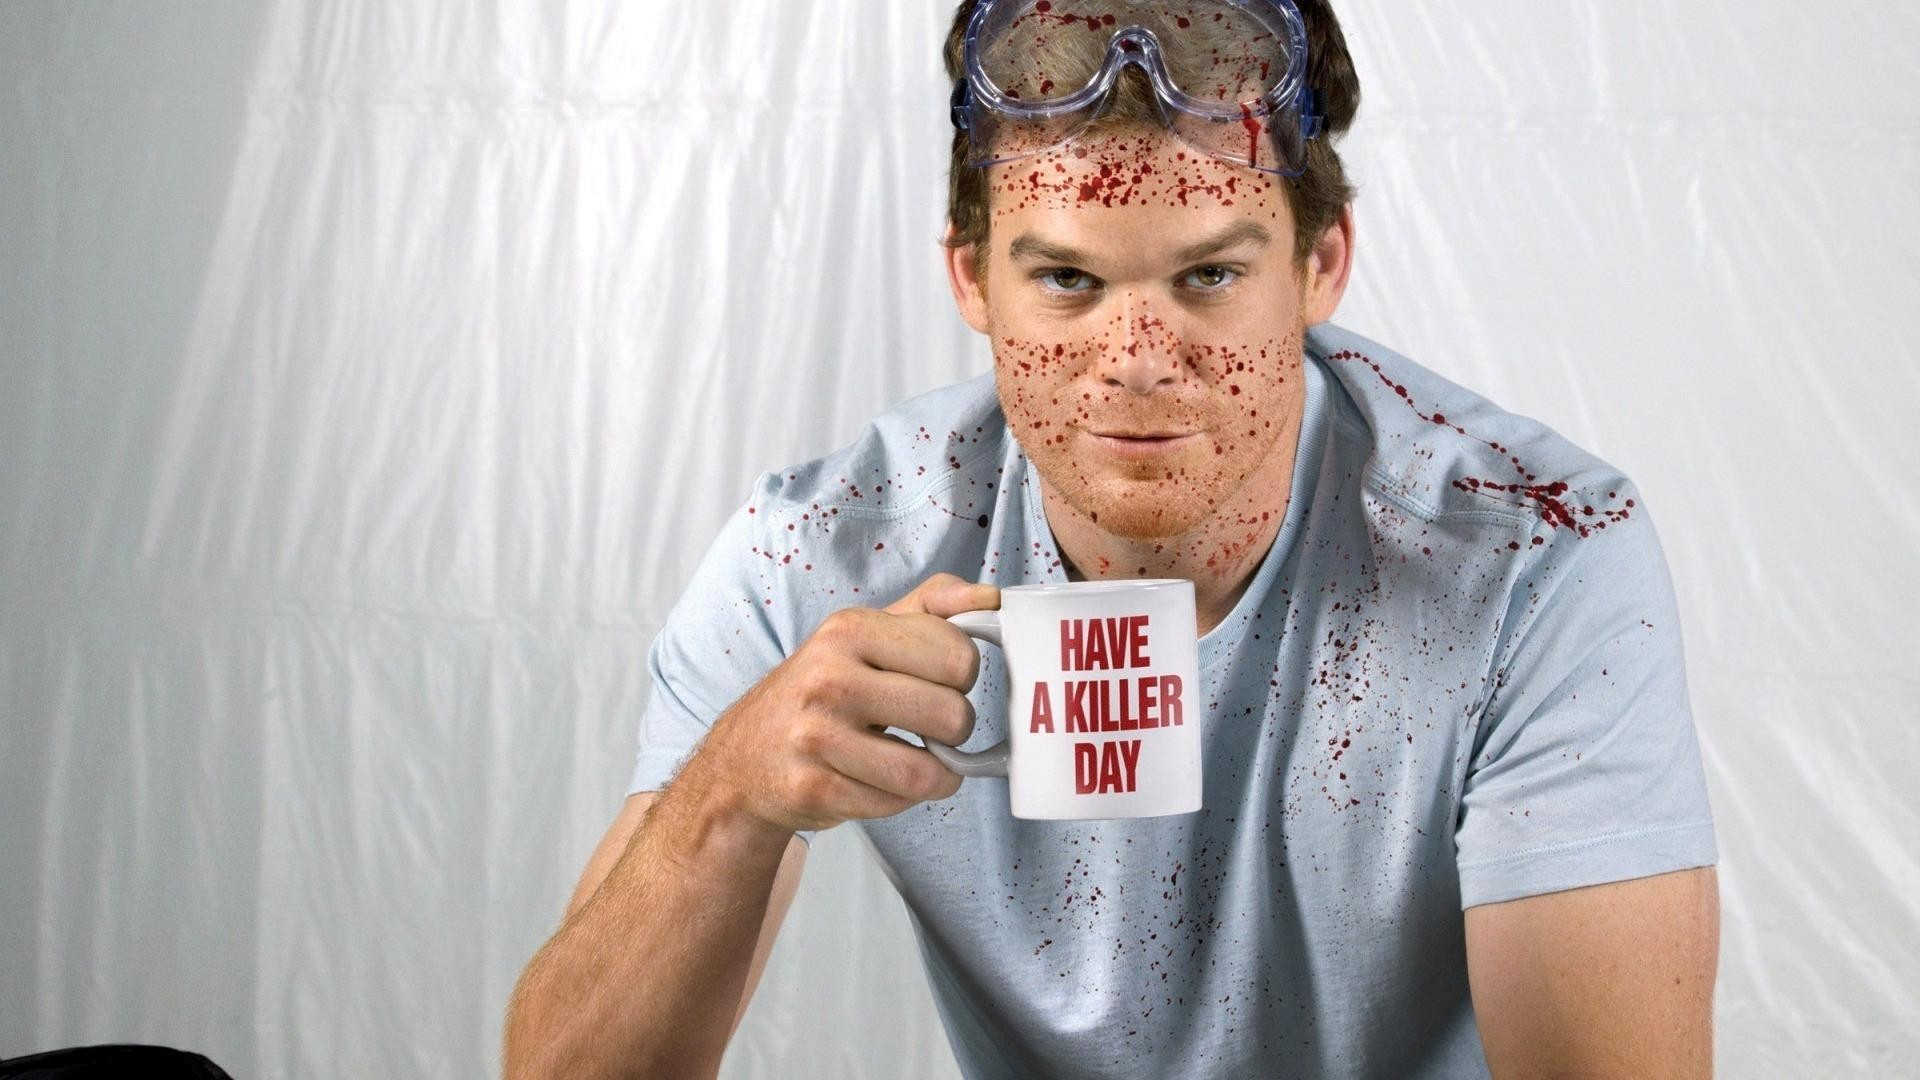 Dexter Dexter Morgan Michael C Hall TV series